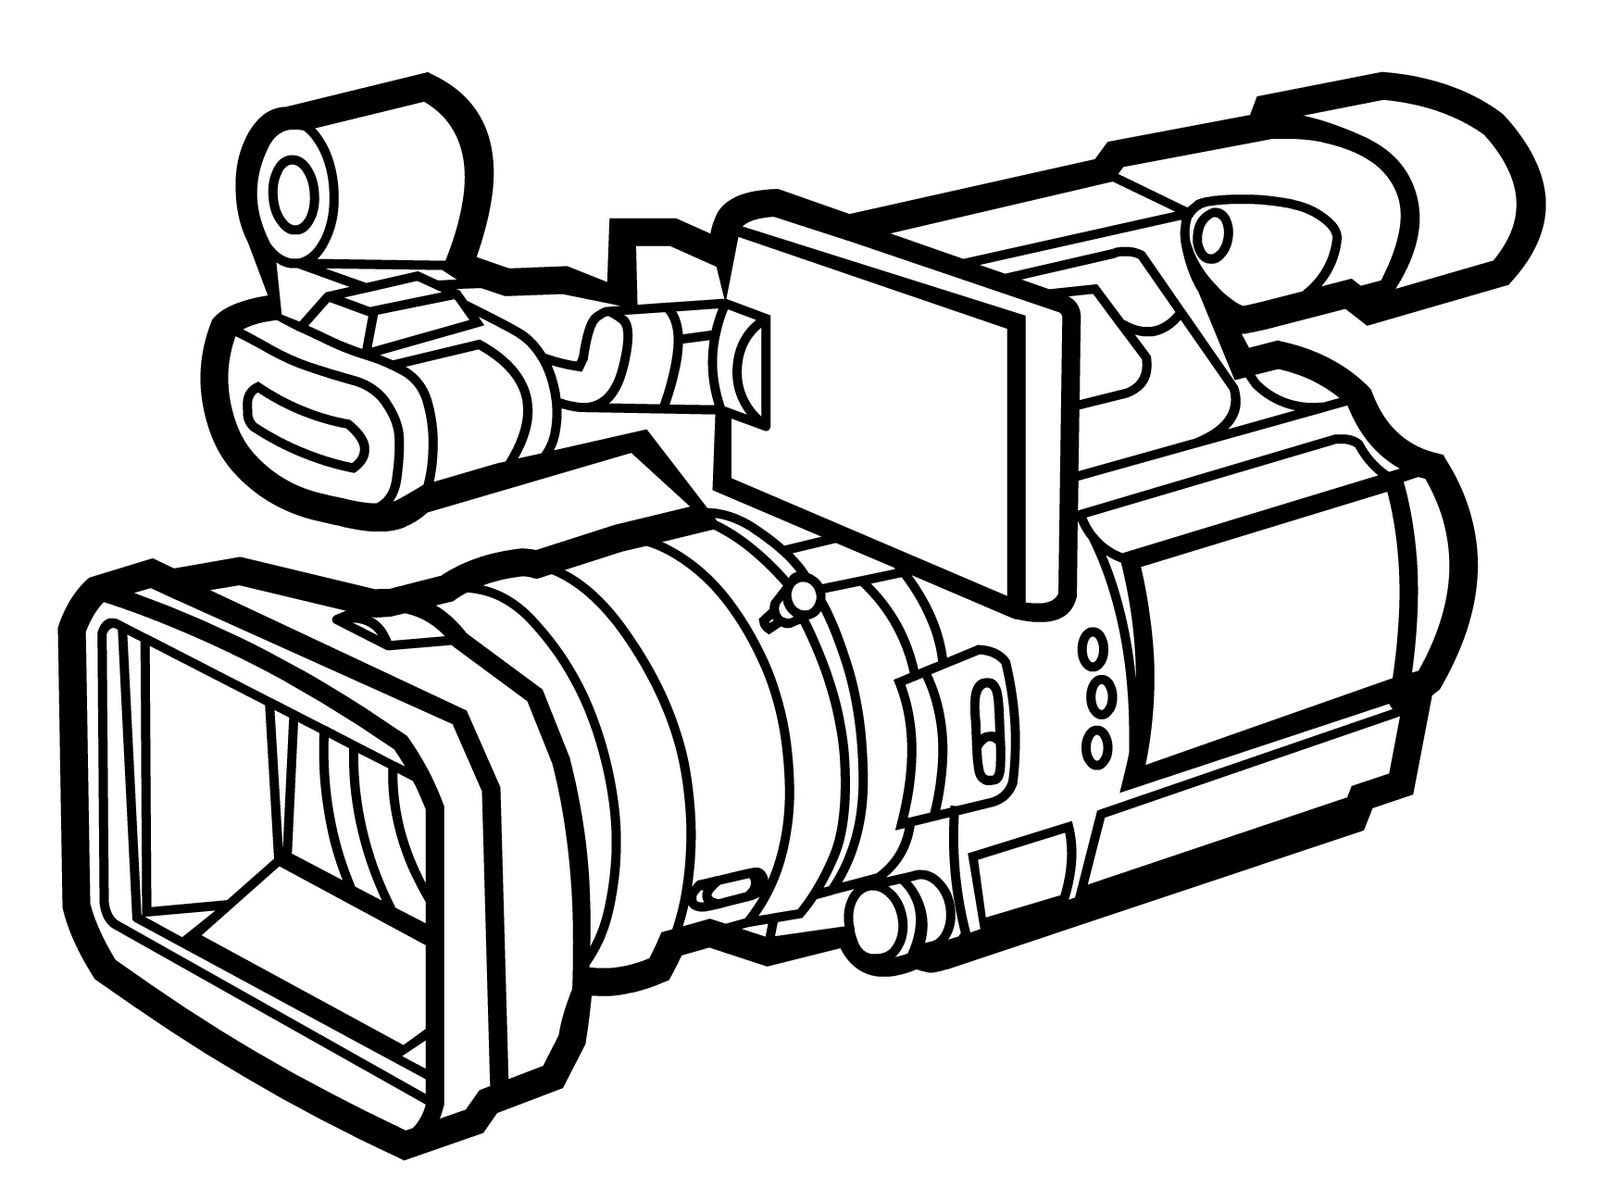 Free Nikon Camera Cliparts, Download Free Clip Art, Free.